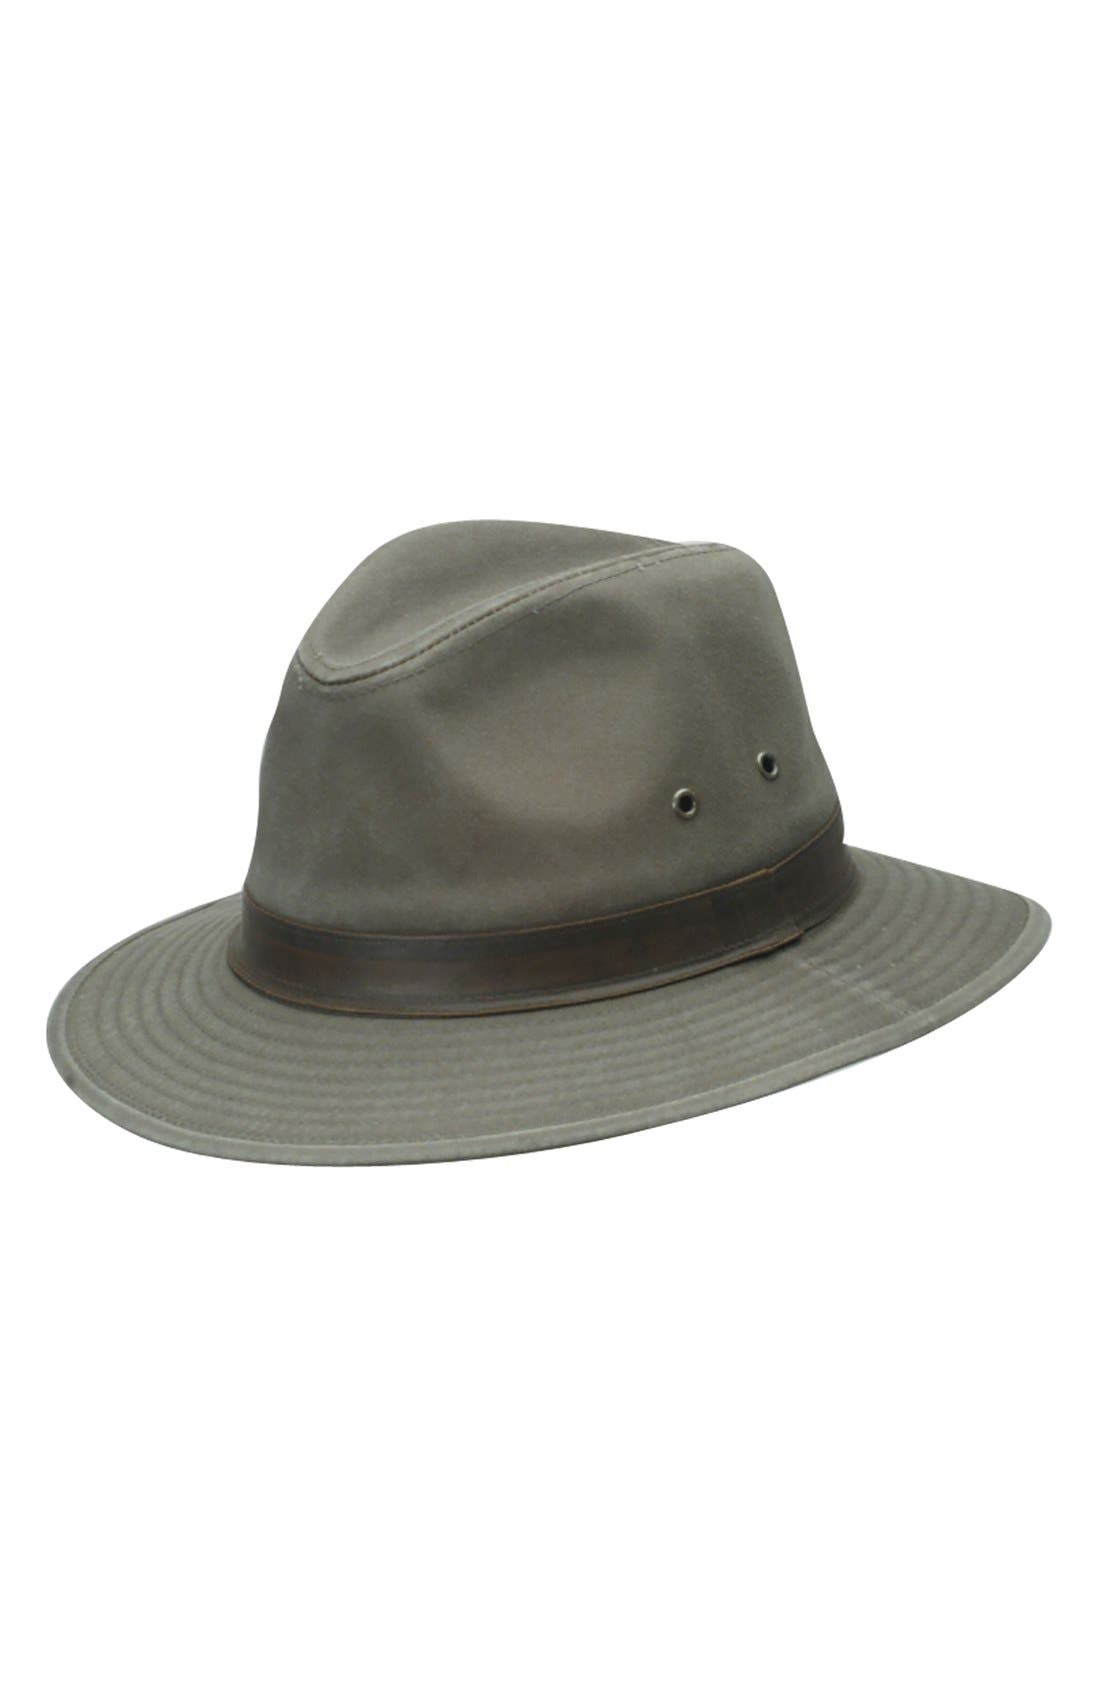 Main Image - Dorfman Pacific Safari Fedora